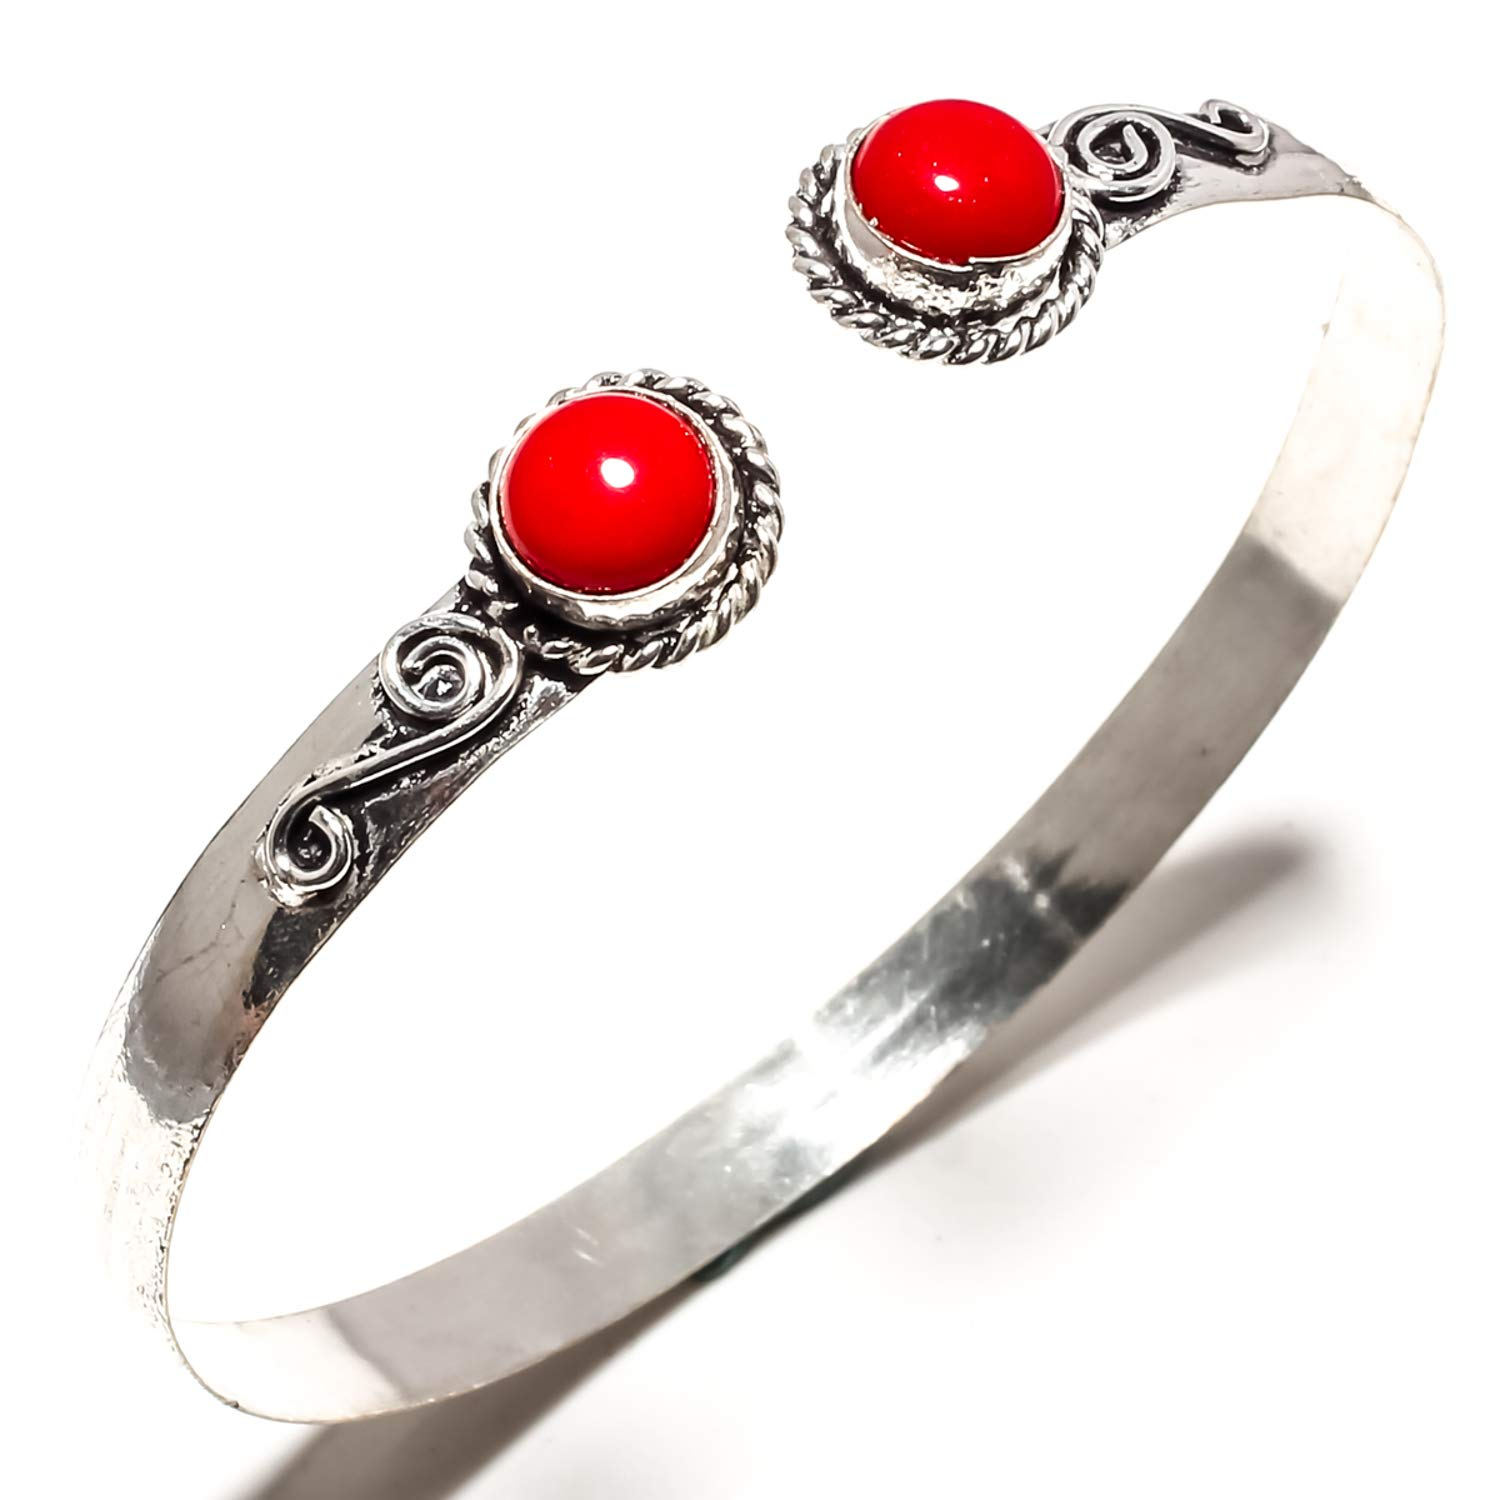 SF-1611 Adjustable Size Cuff Bracelet Stunning Red Coral Gemstone Bangle Kada Handmade 925 Sterling Silver Plated Jewelry